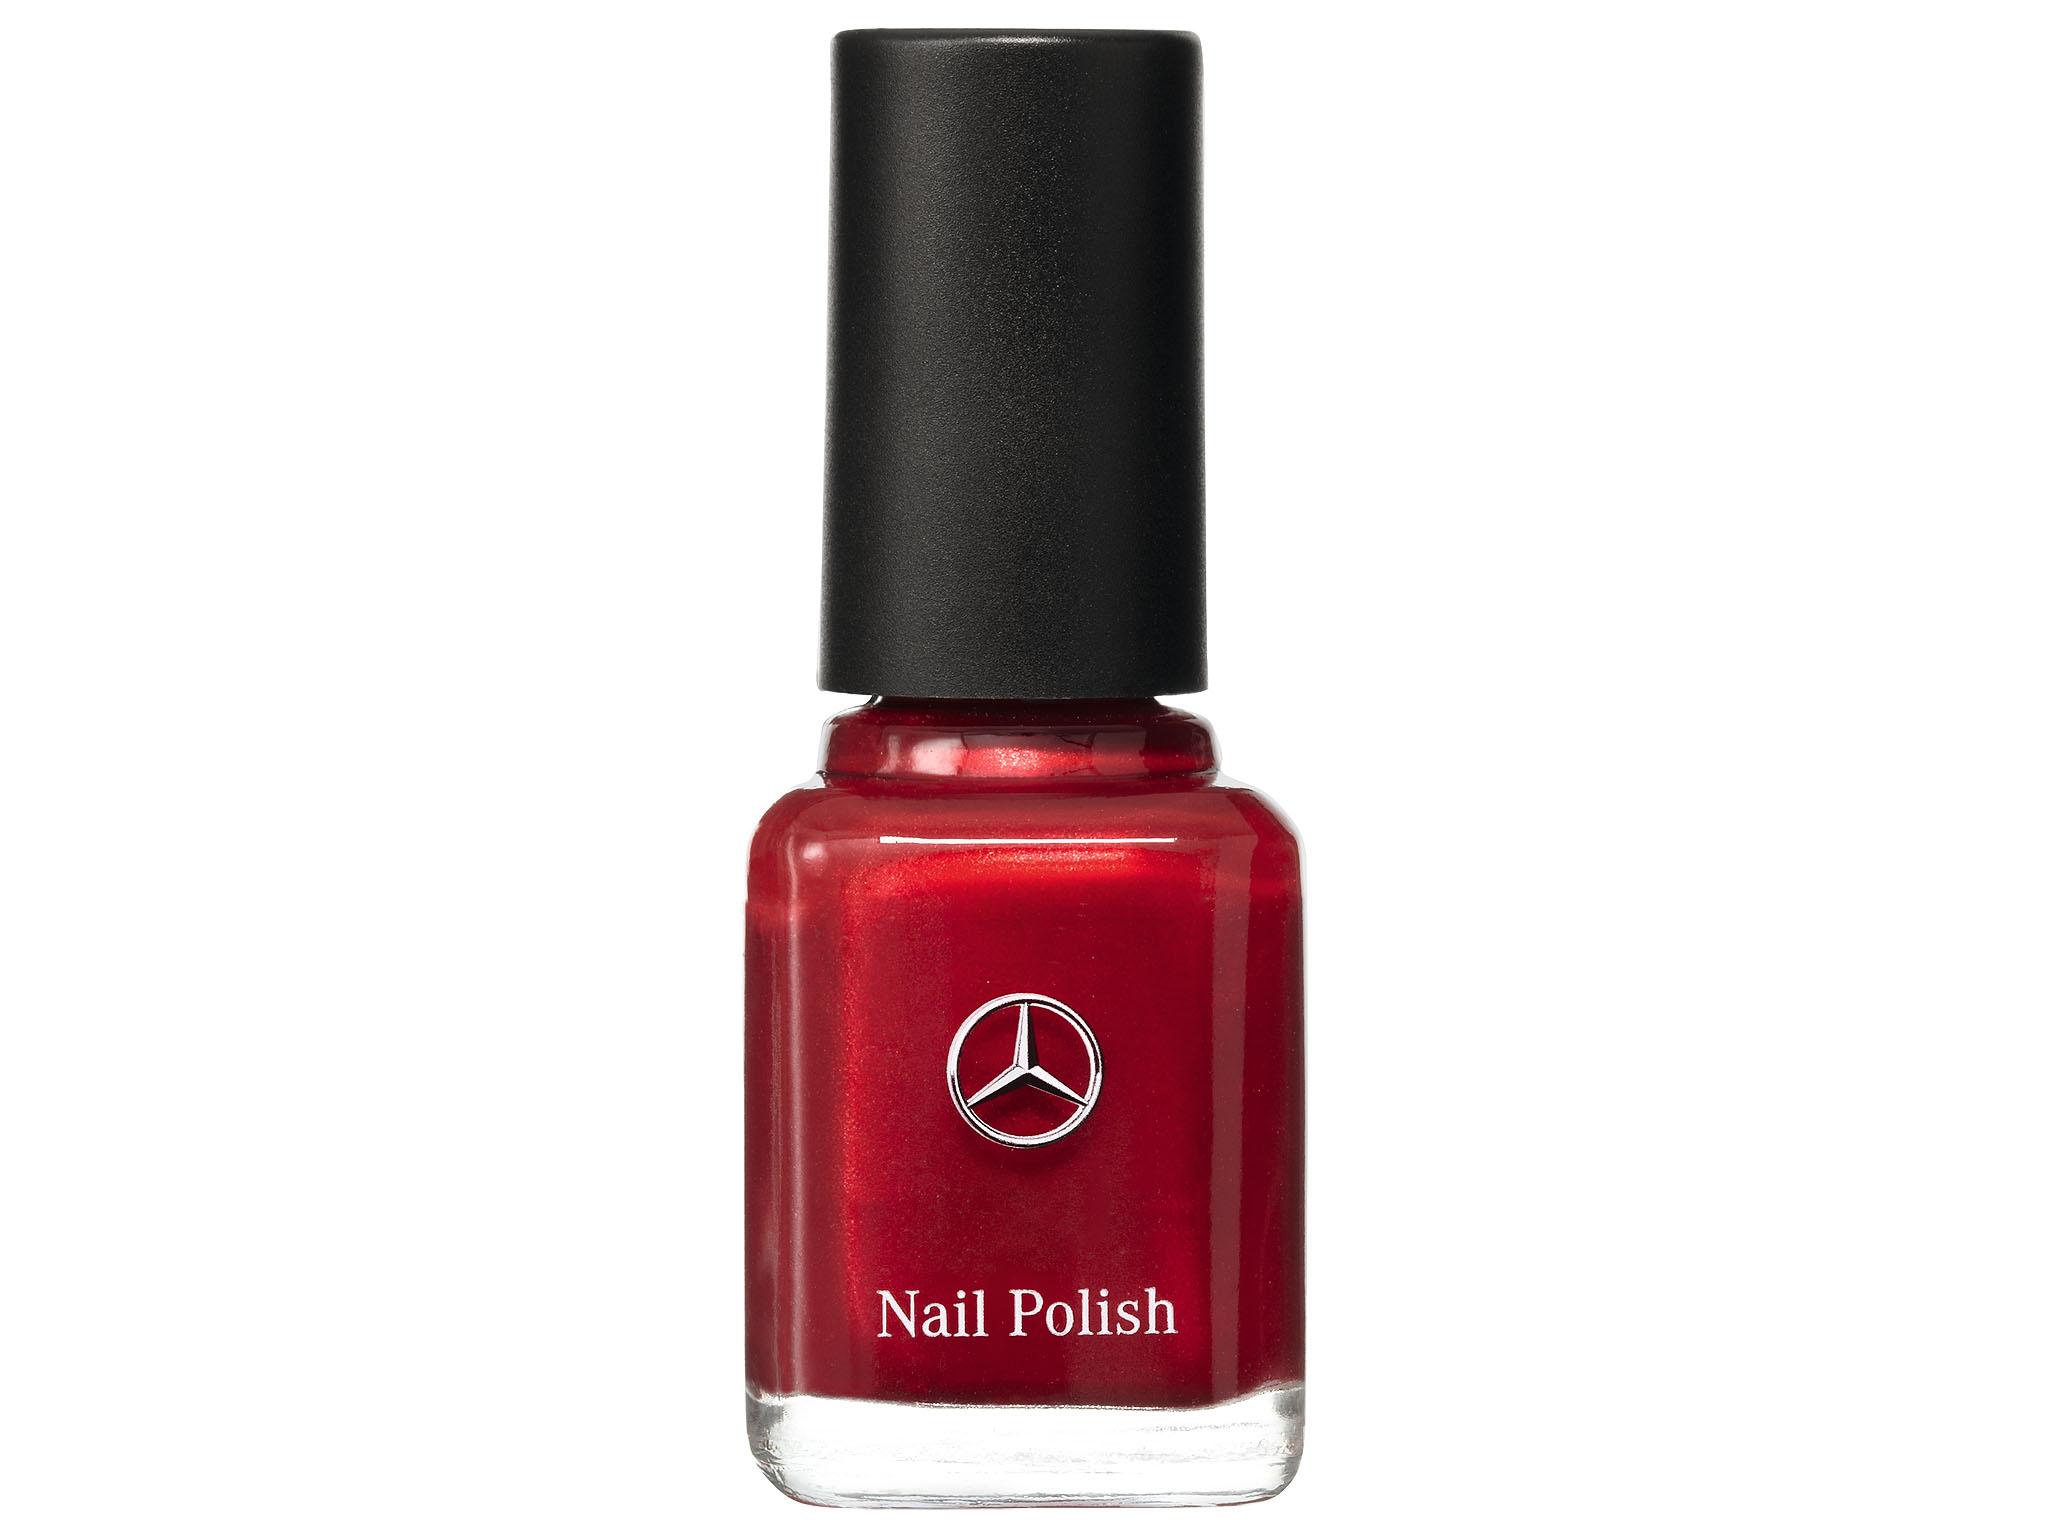 Nagellak Op Kleding Nagellak Jupiterrood Dames Mercedes Benz Official Online Shop